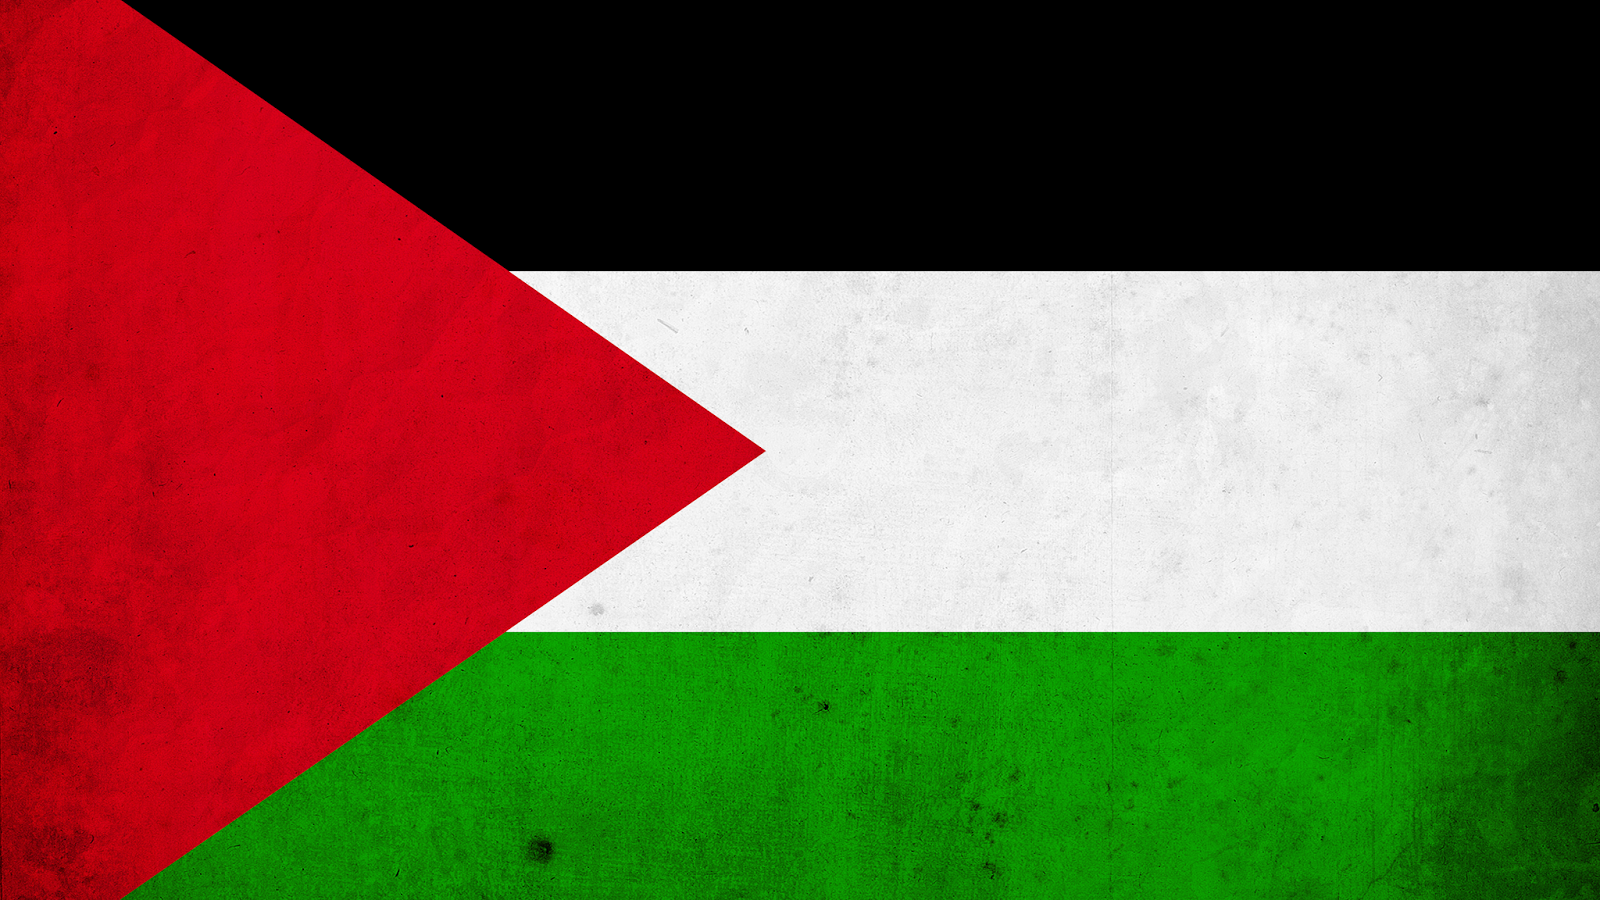 Free Download Palestine Flag Png Hd Pictures 3000x4515 Px